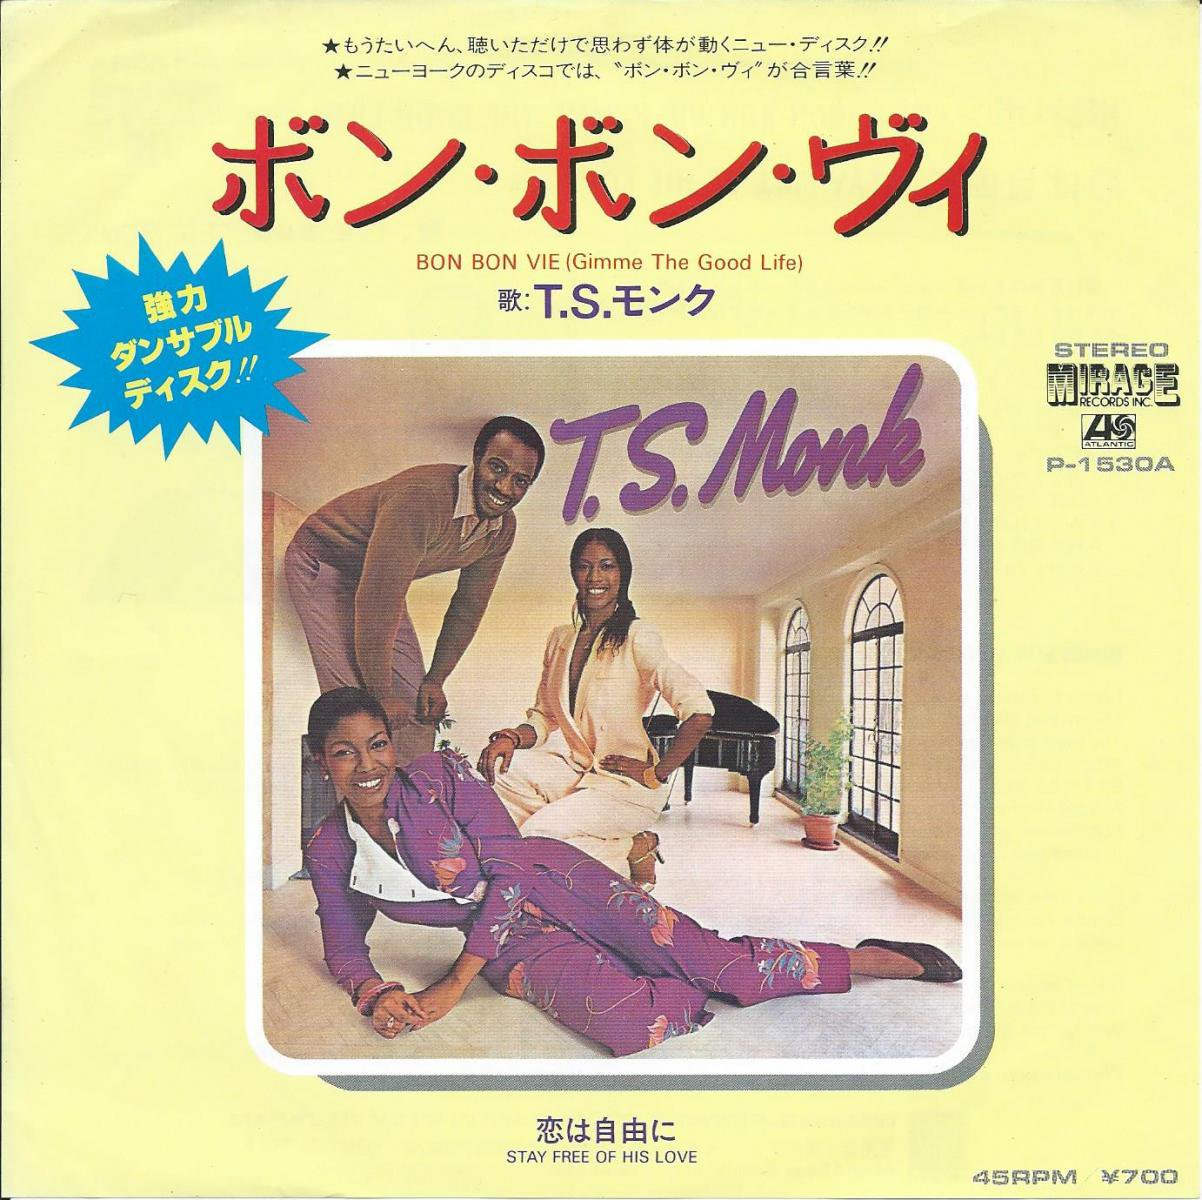 T.S.MONK T.S.モンク / BON BON VIE (Gimme The Good Life) ボン・ボン・ヴィ (7